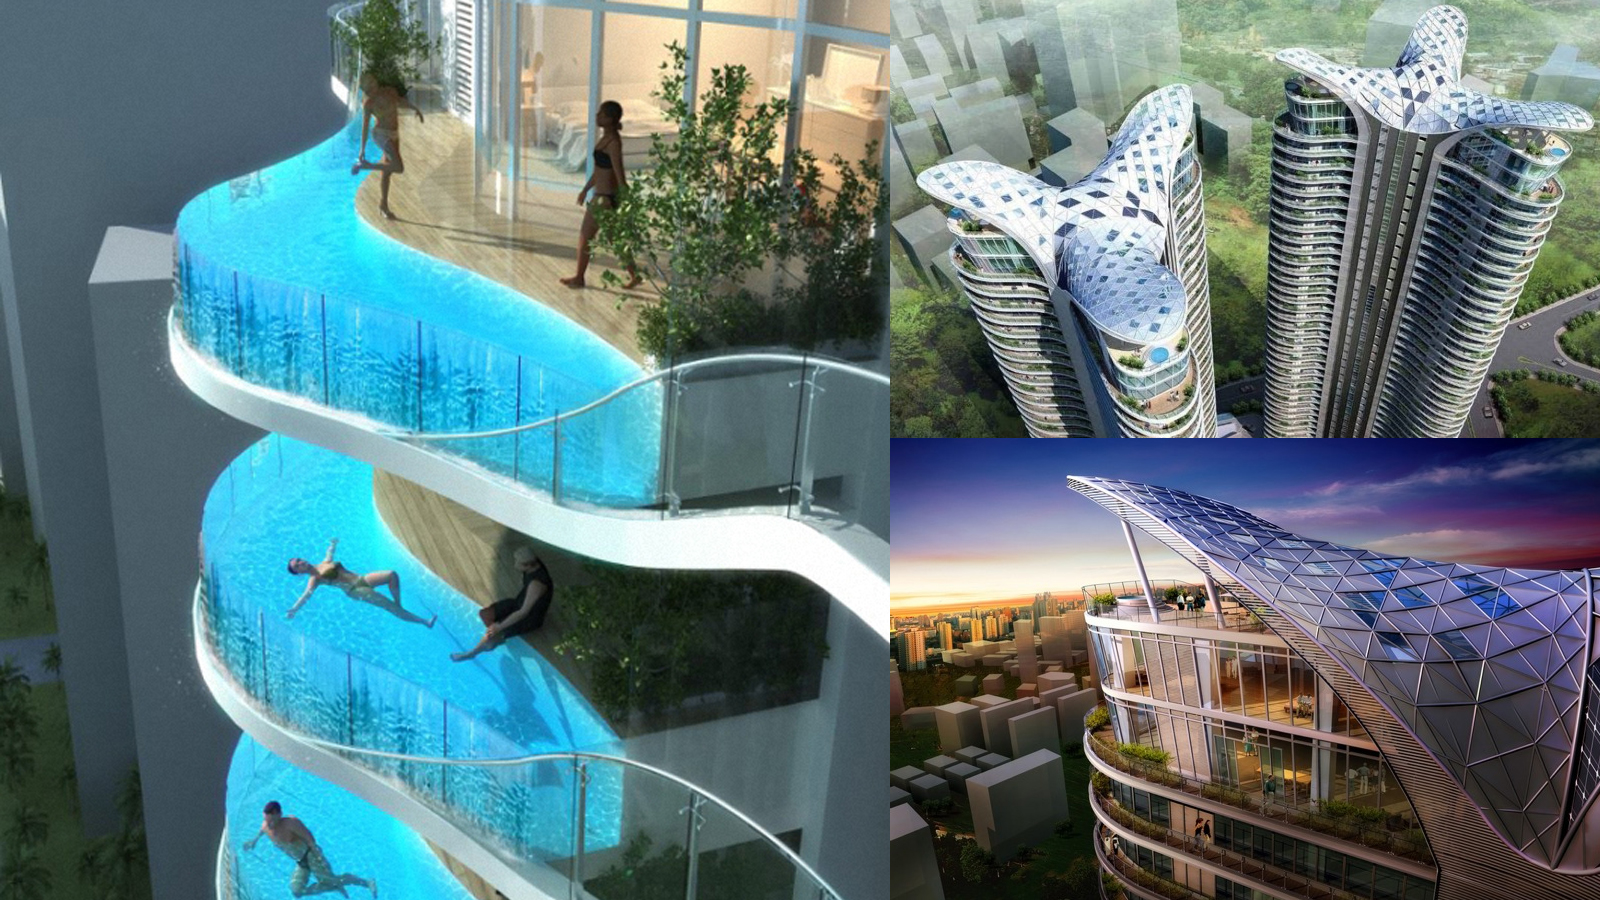 This building 39 s balconies are swimming pools gizmodo for Piscine de reve